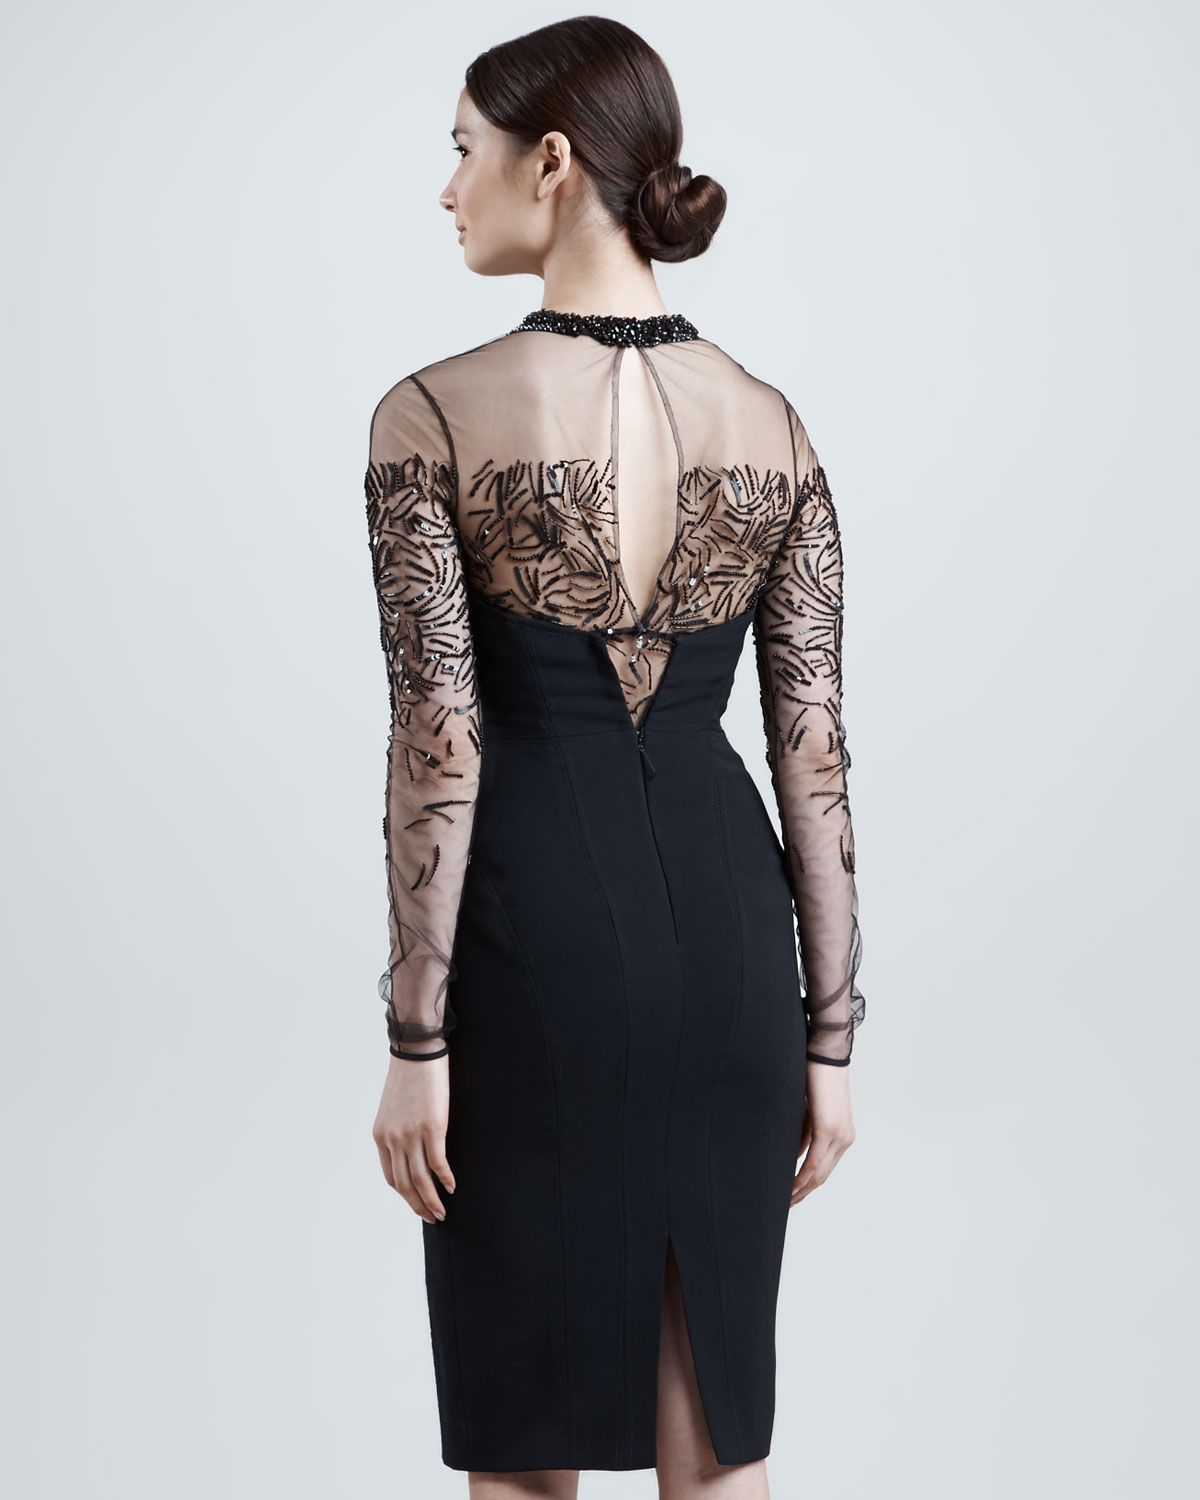 J. Mendel Beaded Sheer-Yoke Long-Sleeve Dress, Eclipse - Neiman Marcus